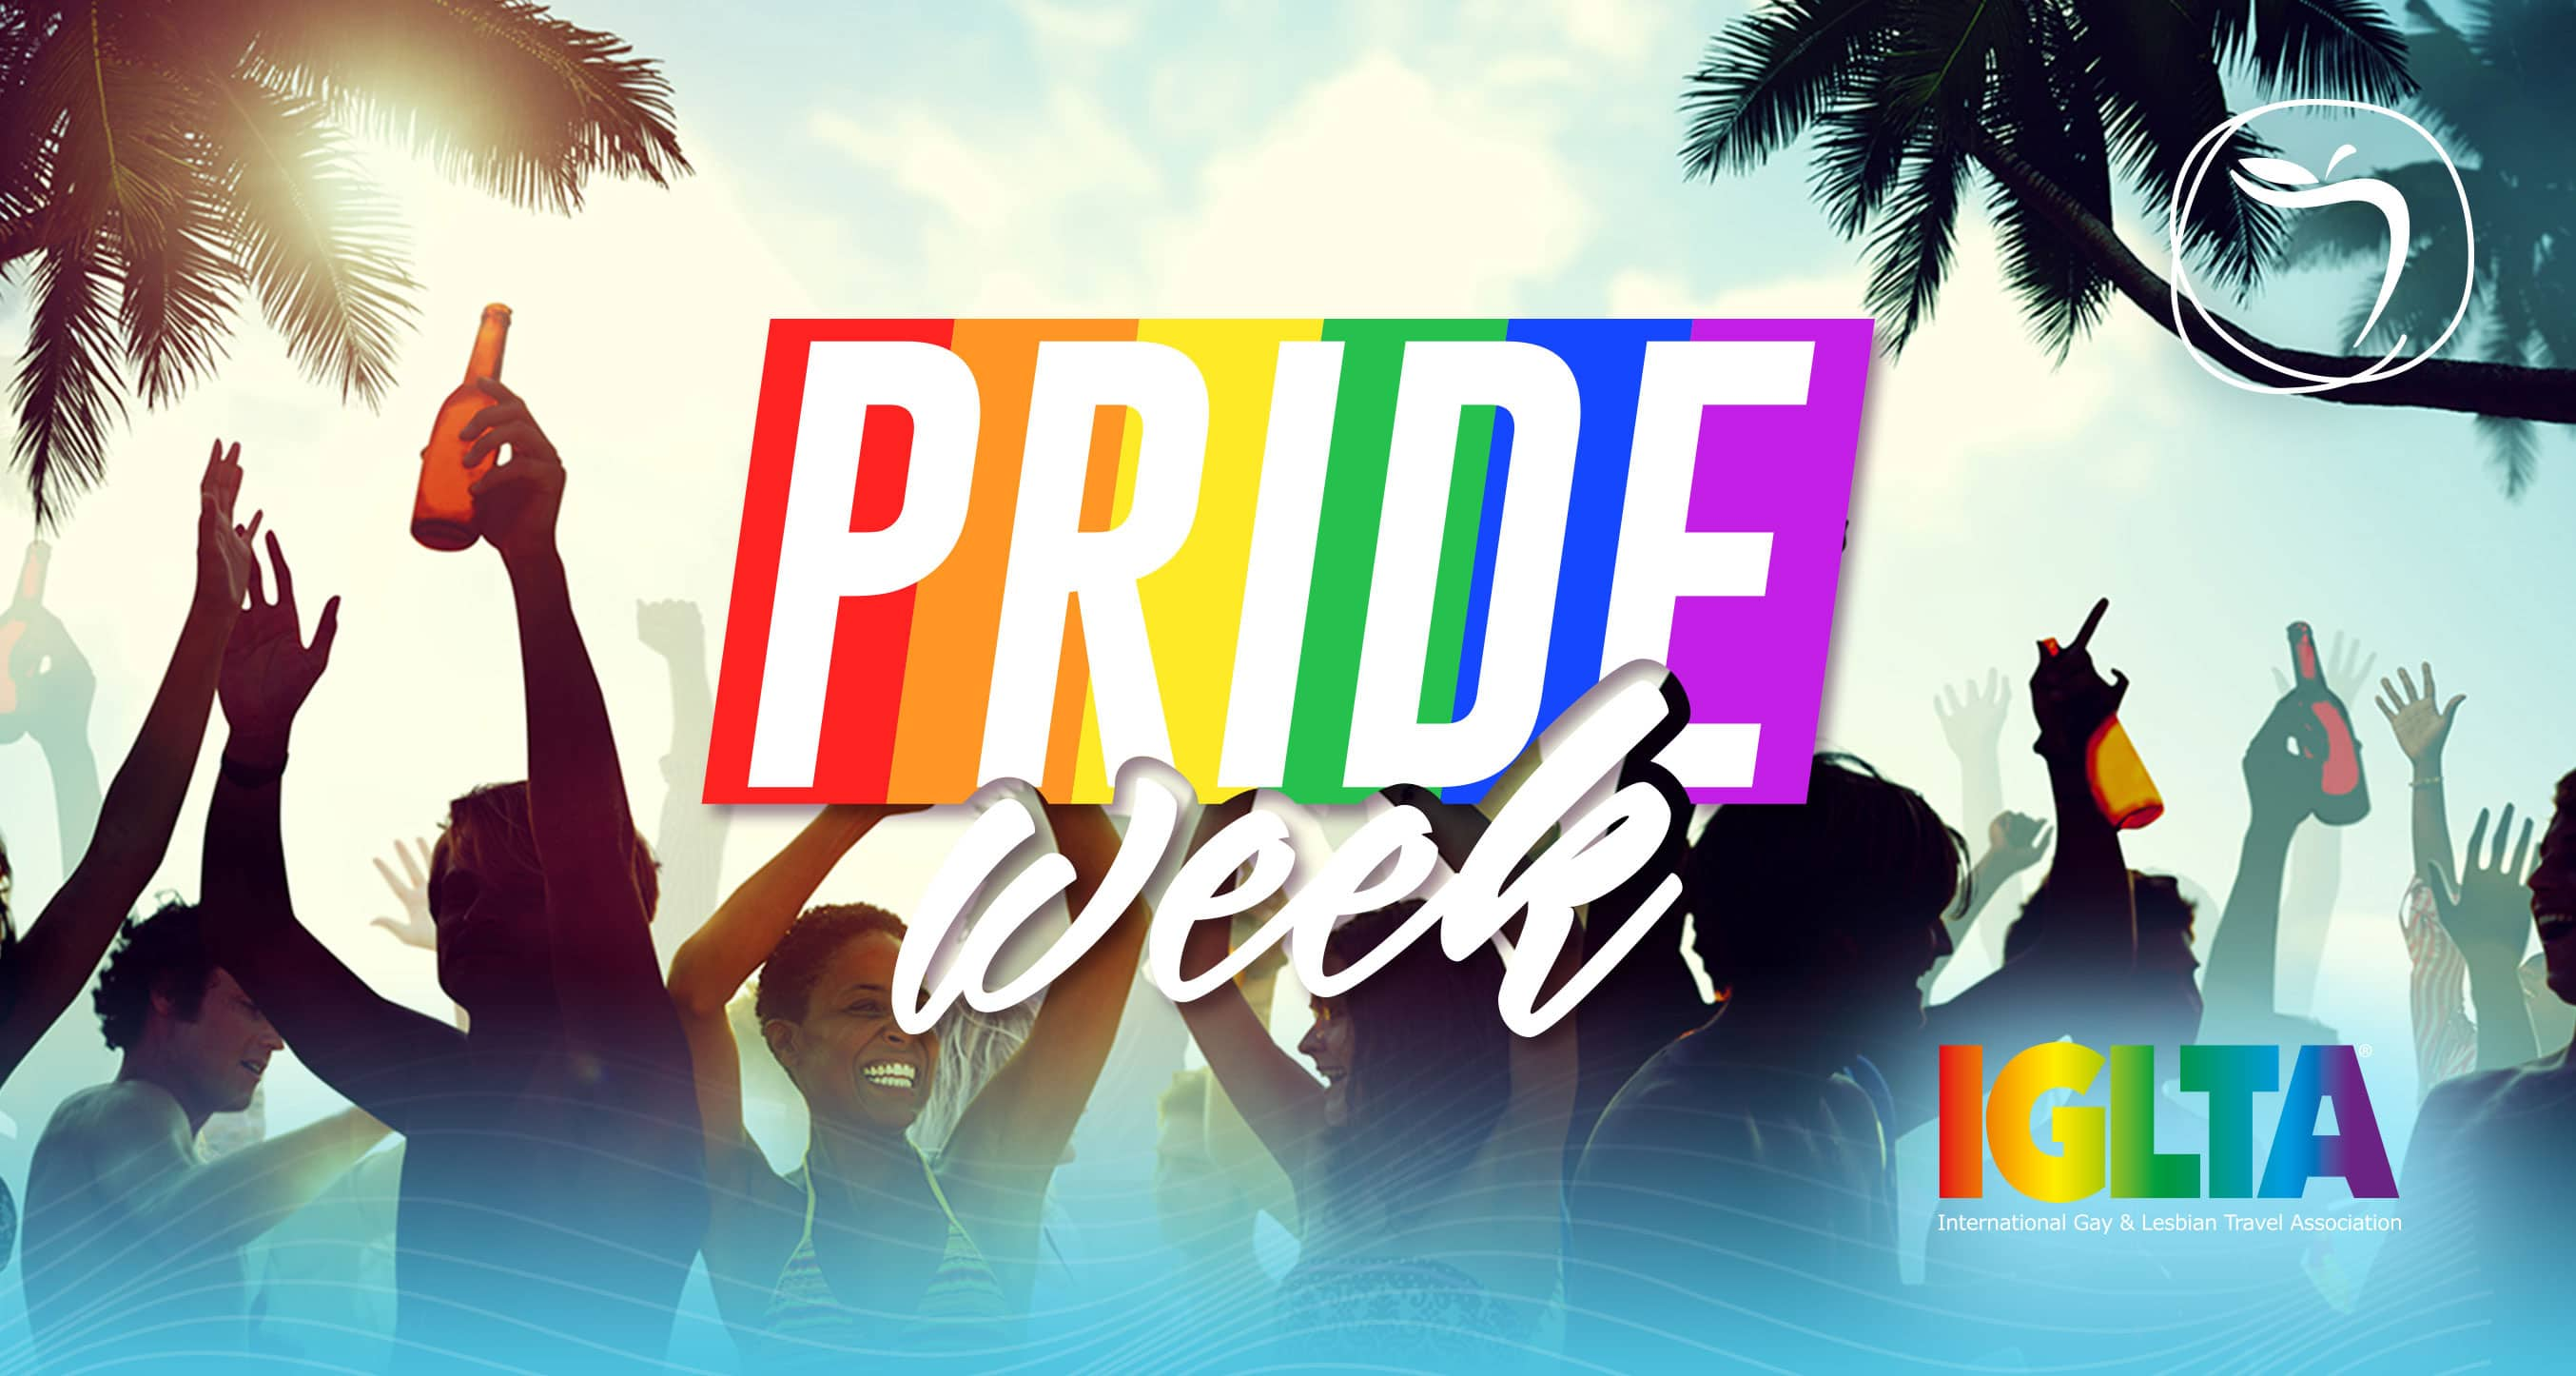 Temptation Cancun Resort Pride Week Special Event